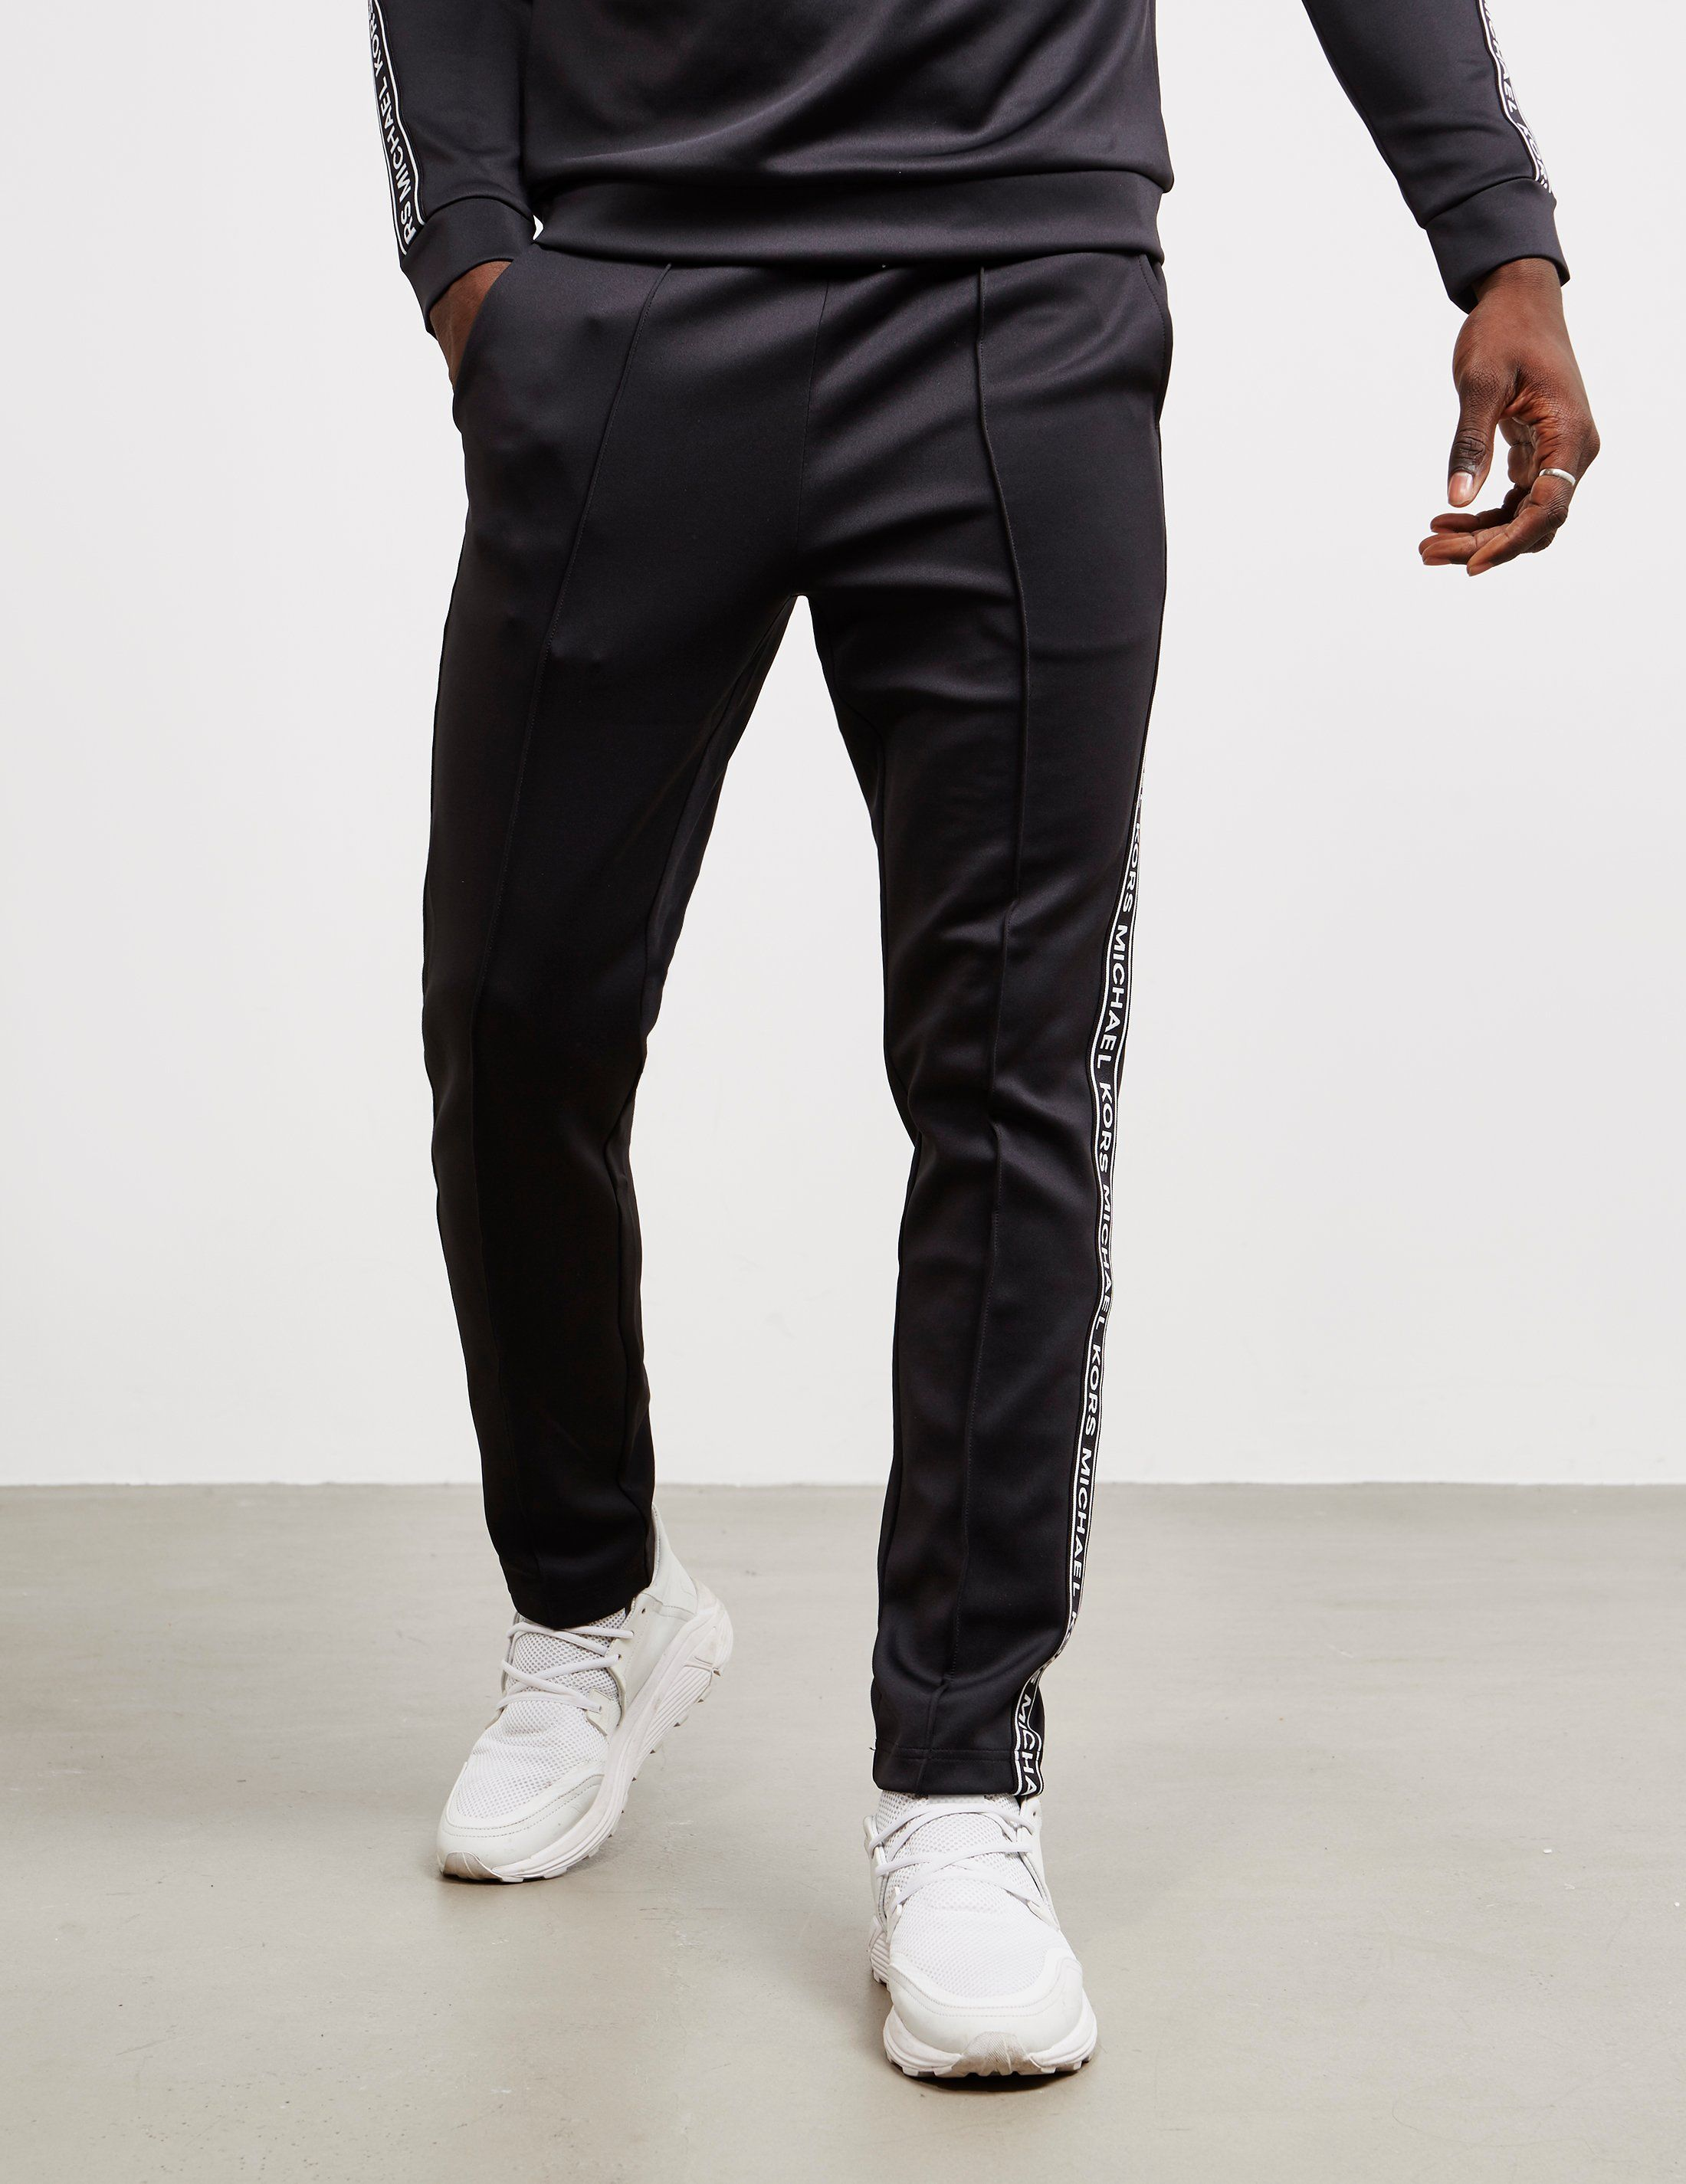 Michael Kors Tape Track Pants